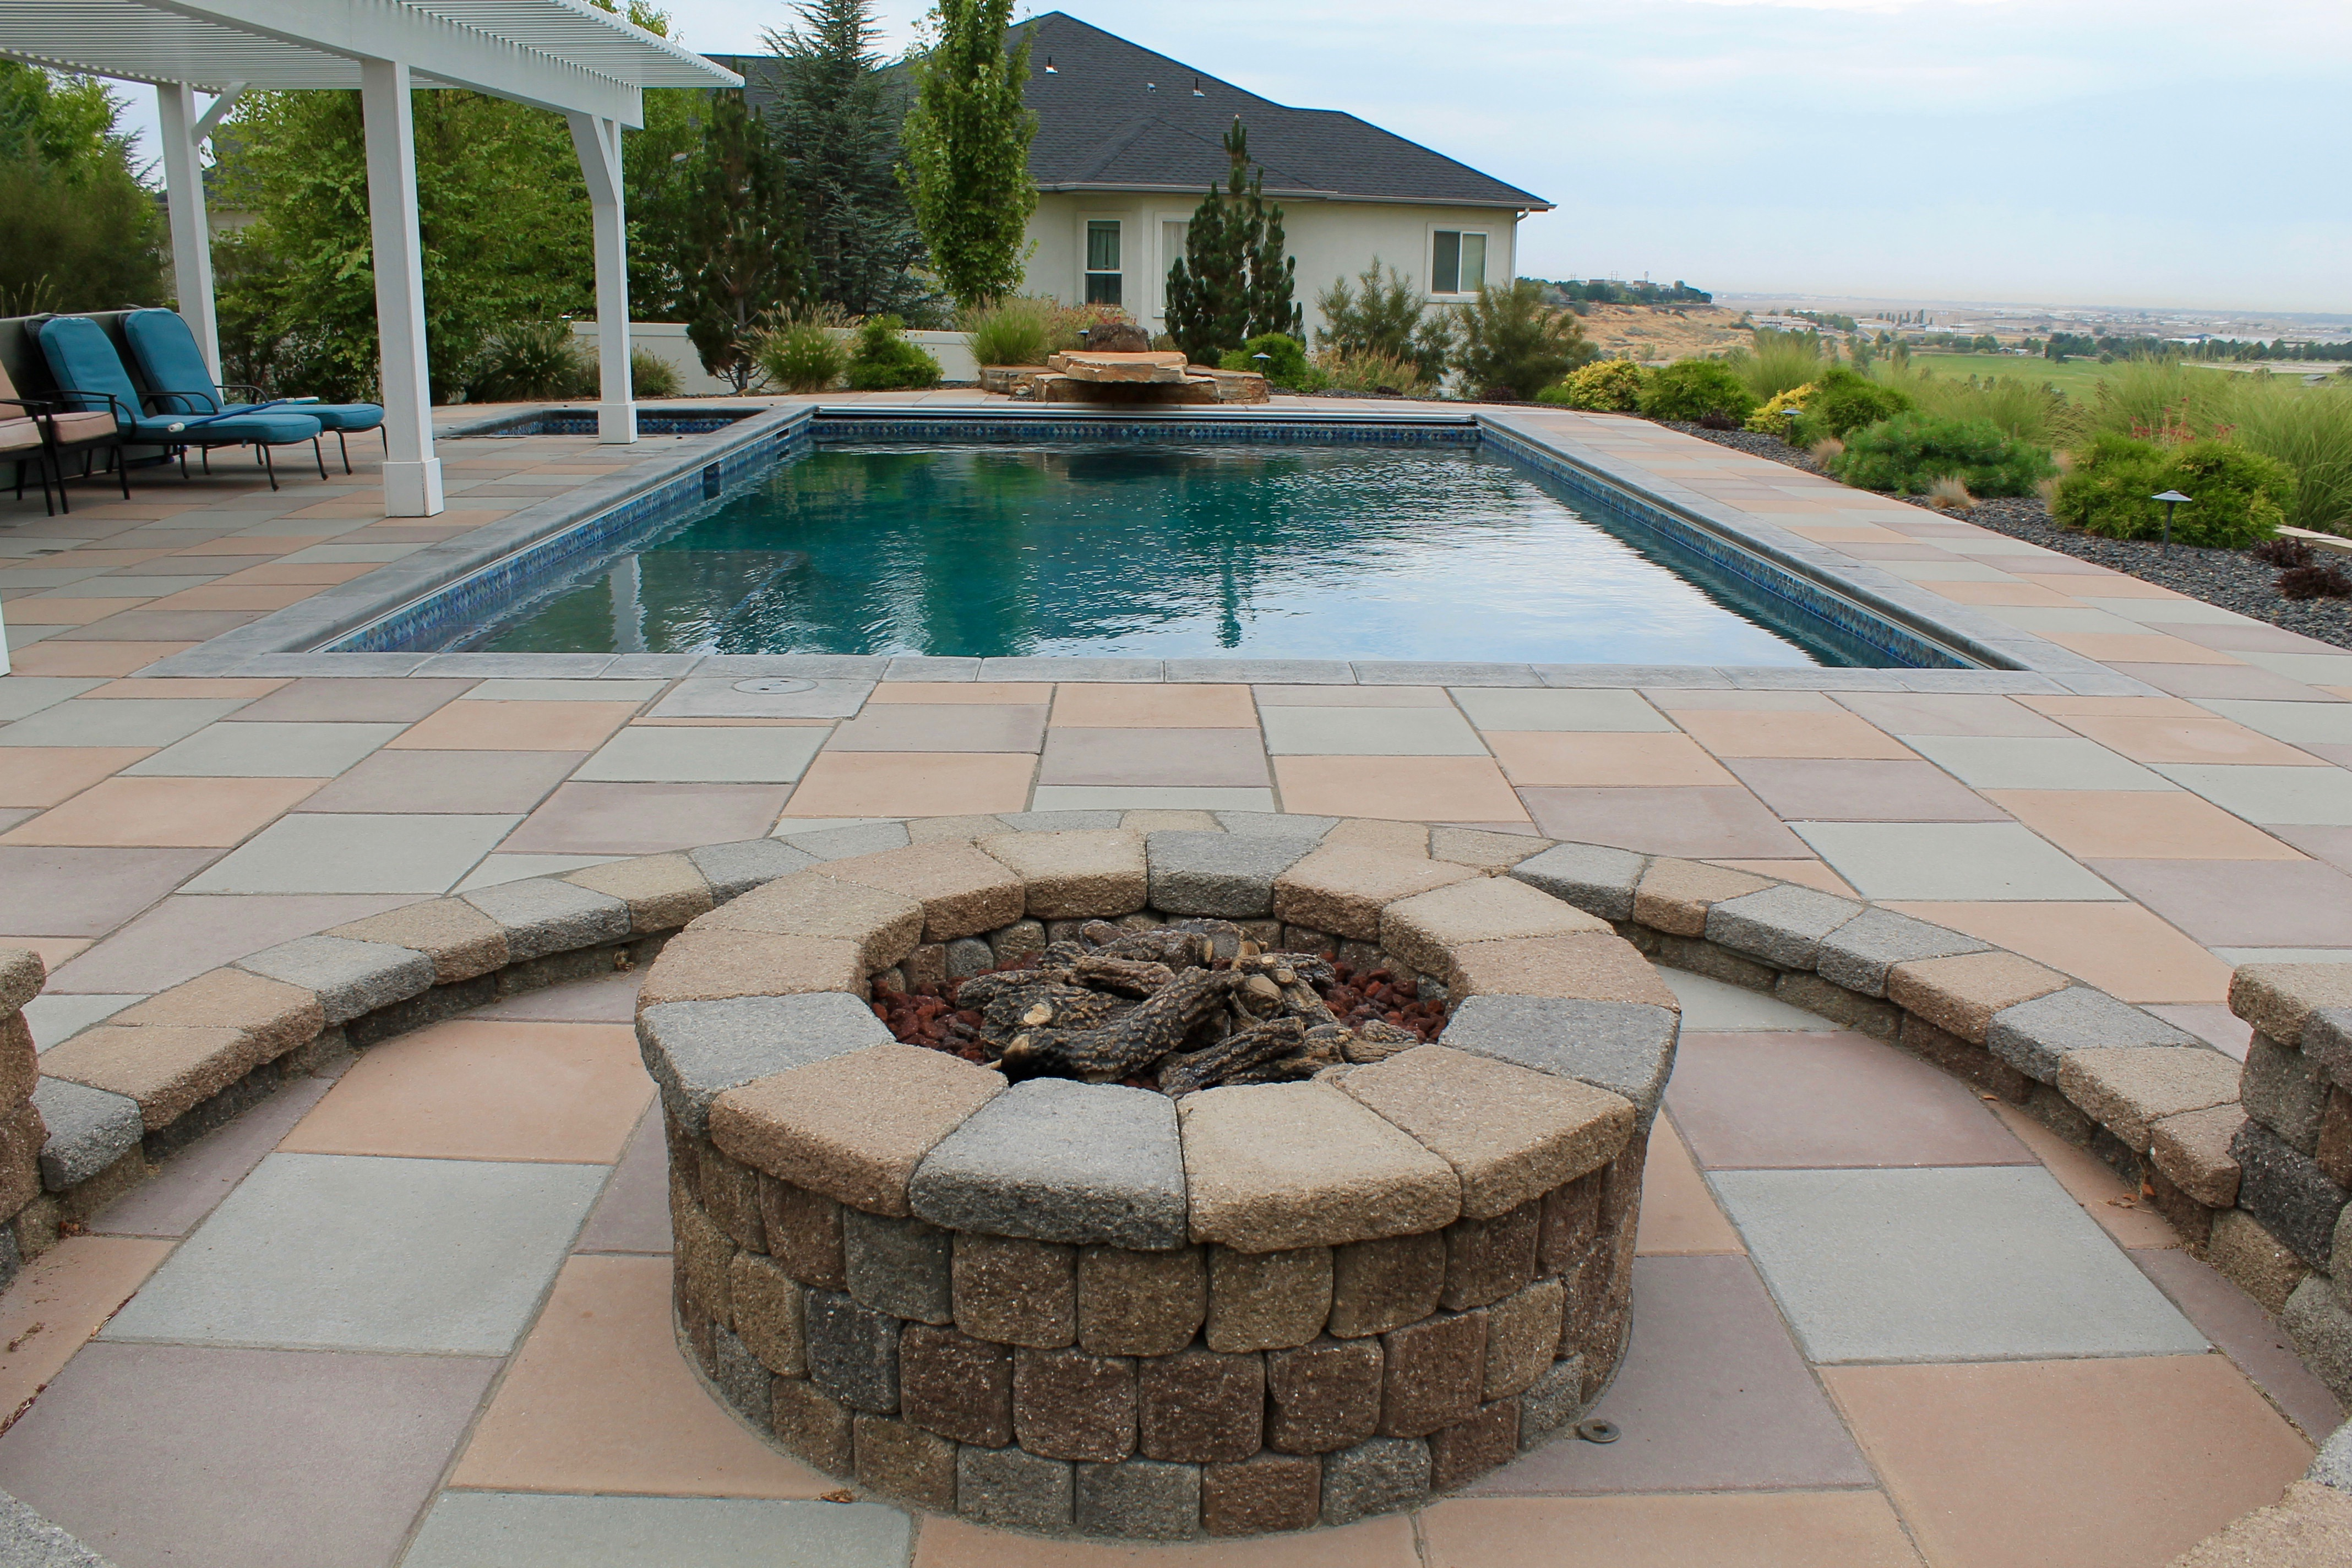 Pool and Fire Ring Backyard | The Garden Artist Boise, ID